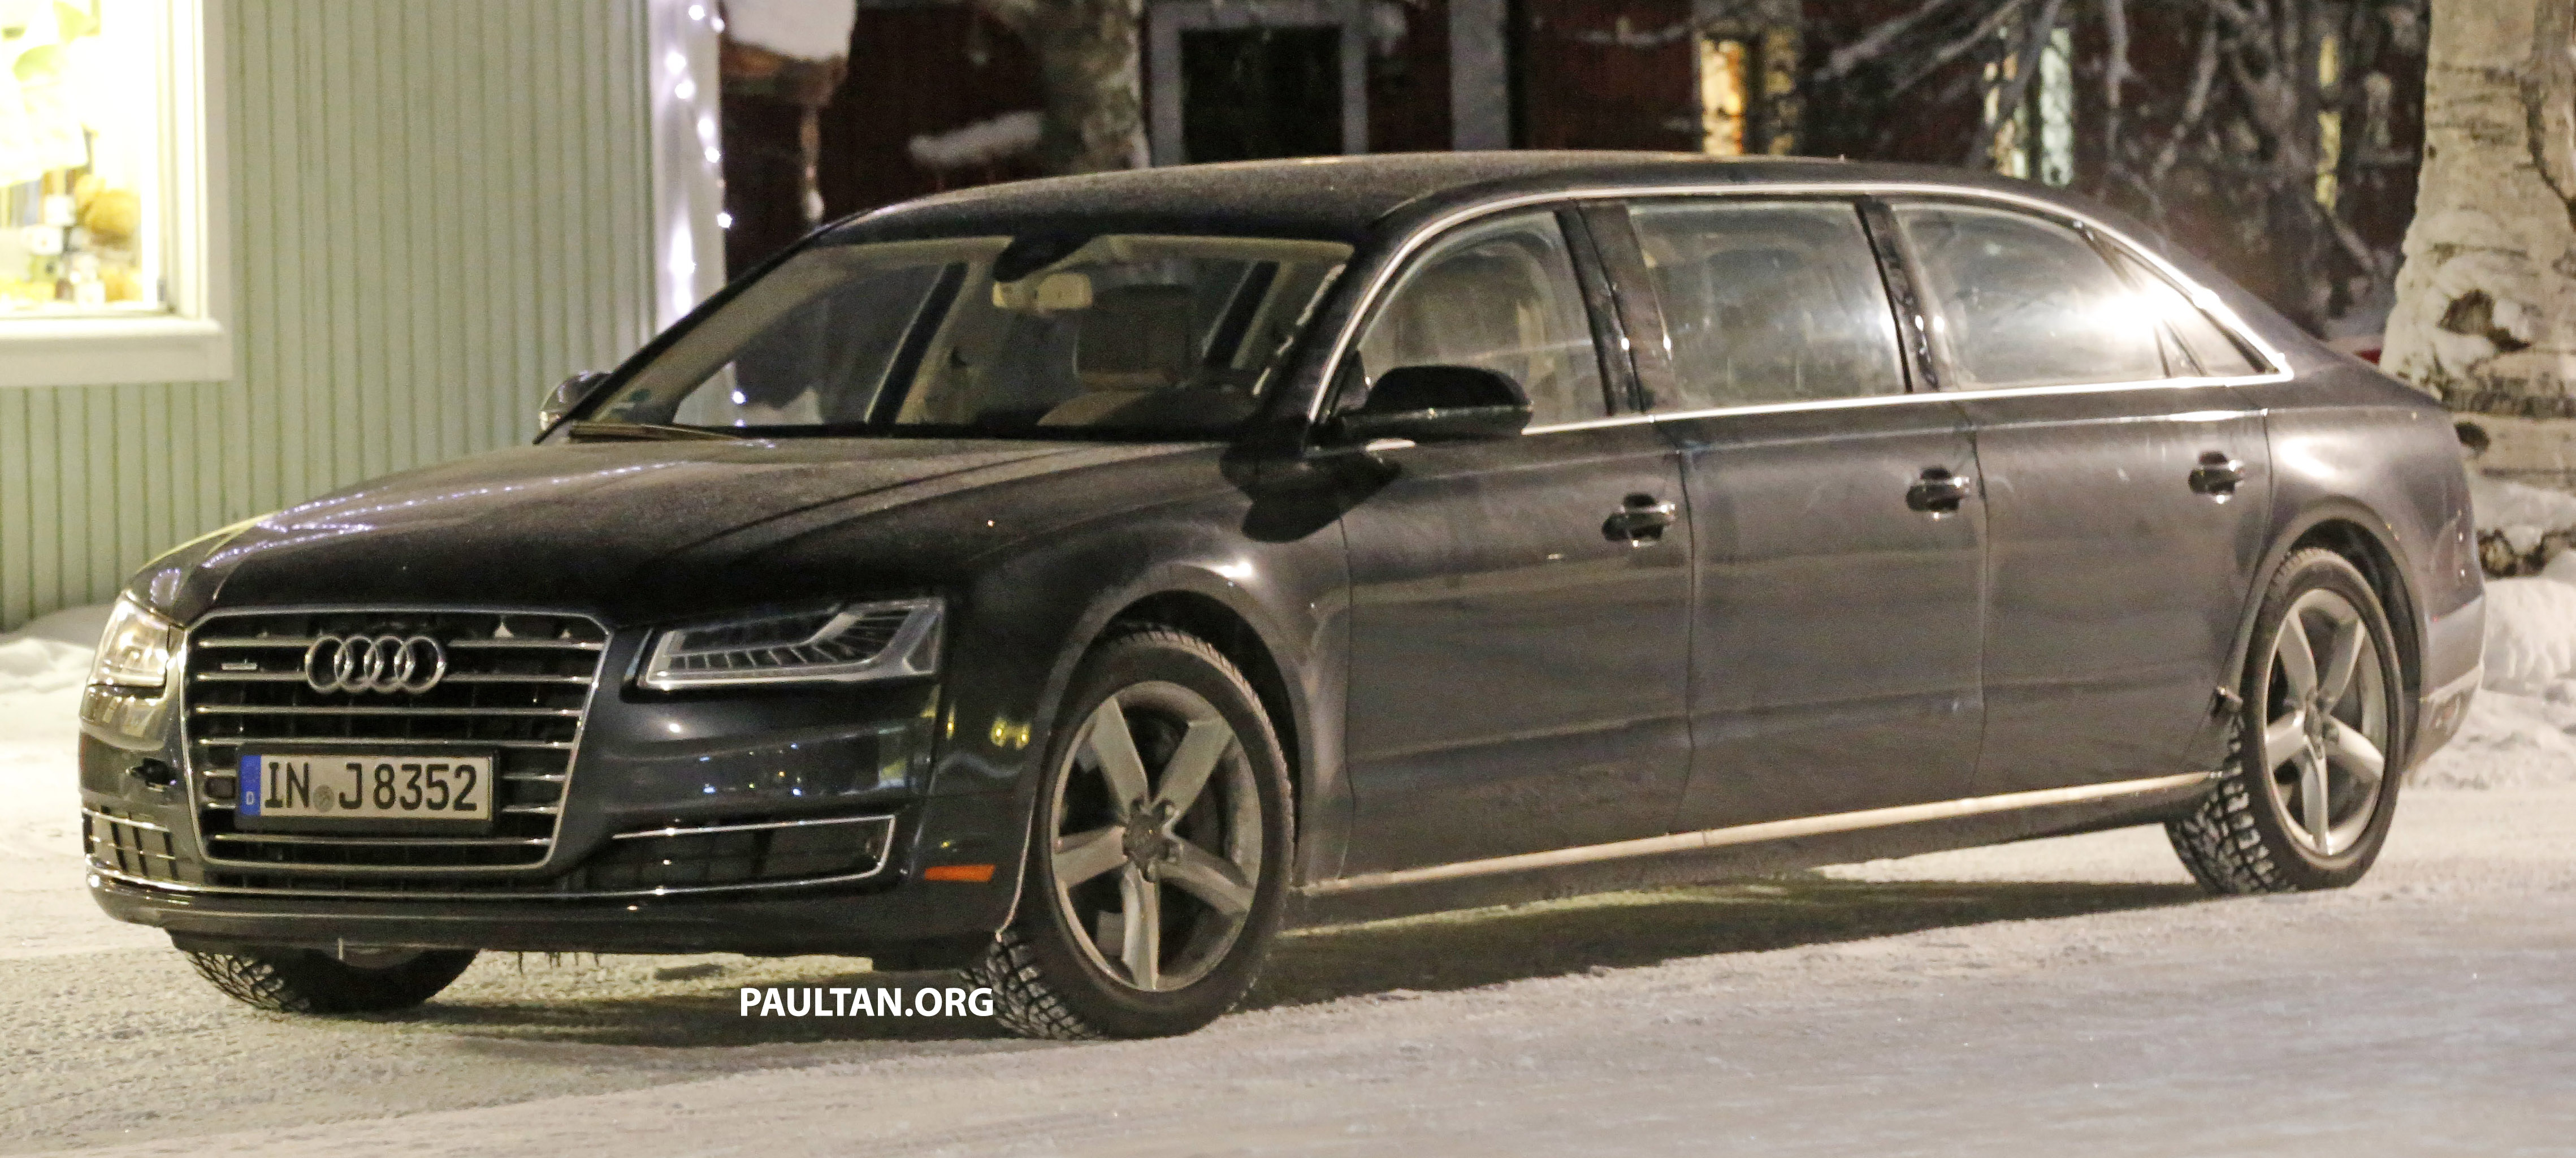 audi a8 stretched limousine with six doors sighted image 434955. Black Bedroom Furniture Sets. Home Design Ideas